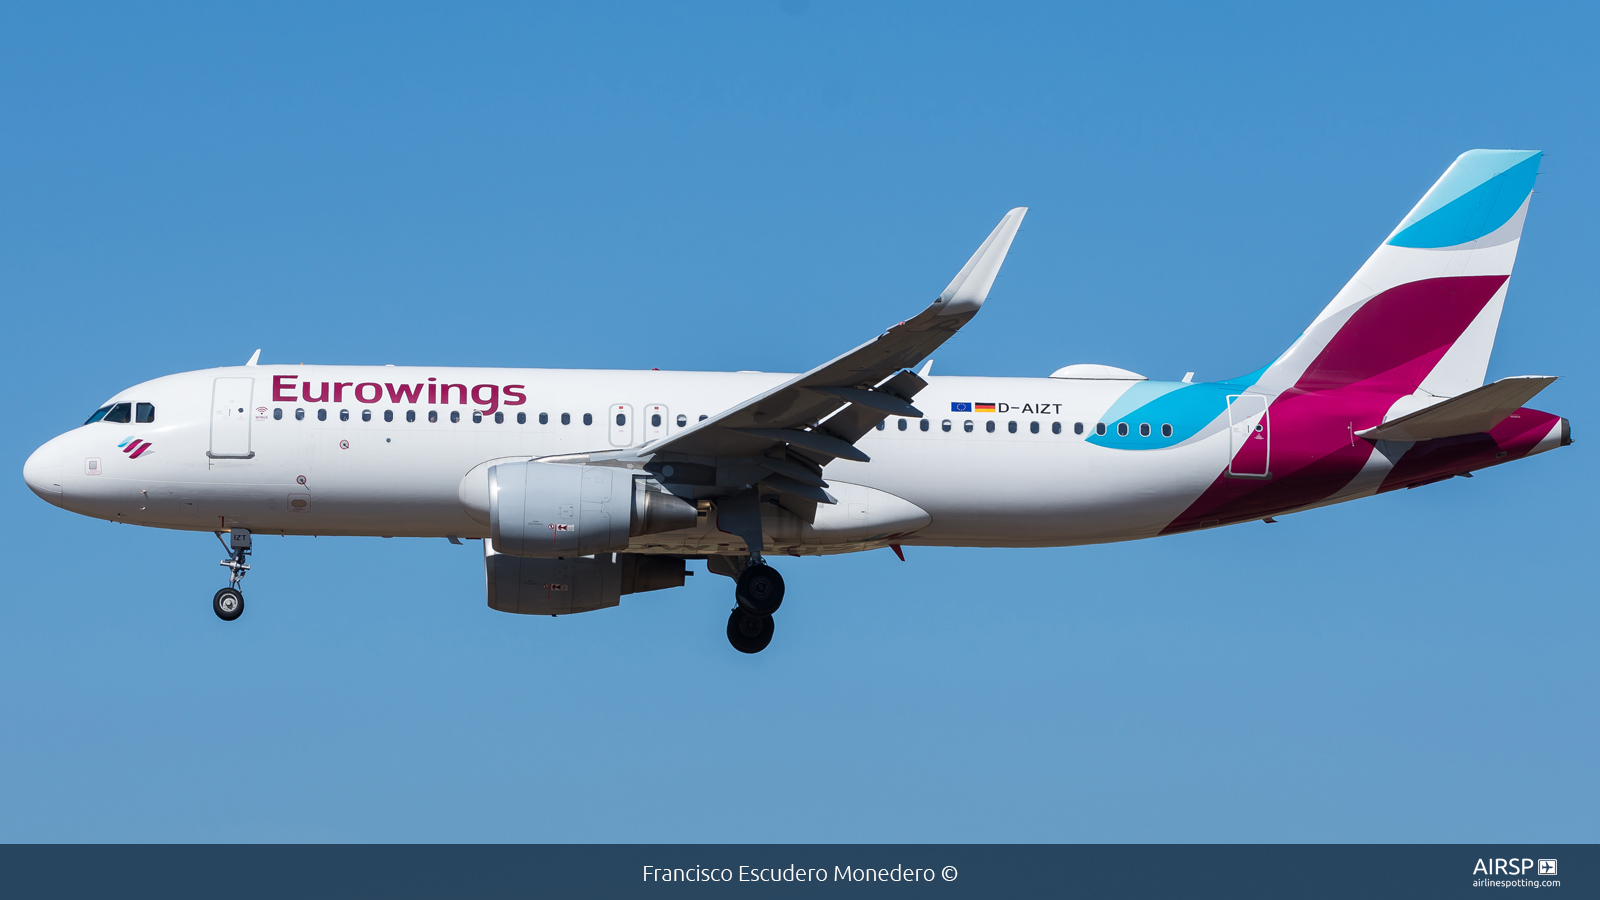 Eurowings  Airbus A320  D-AIZT